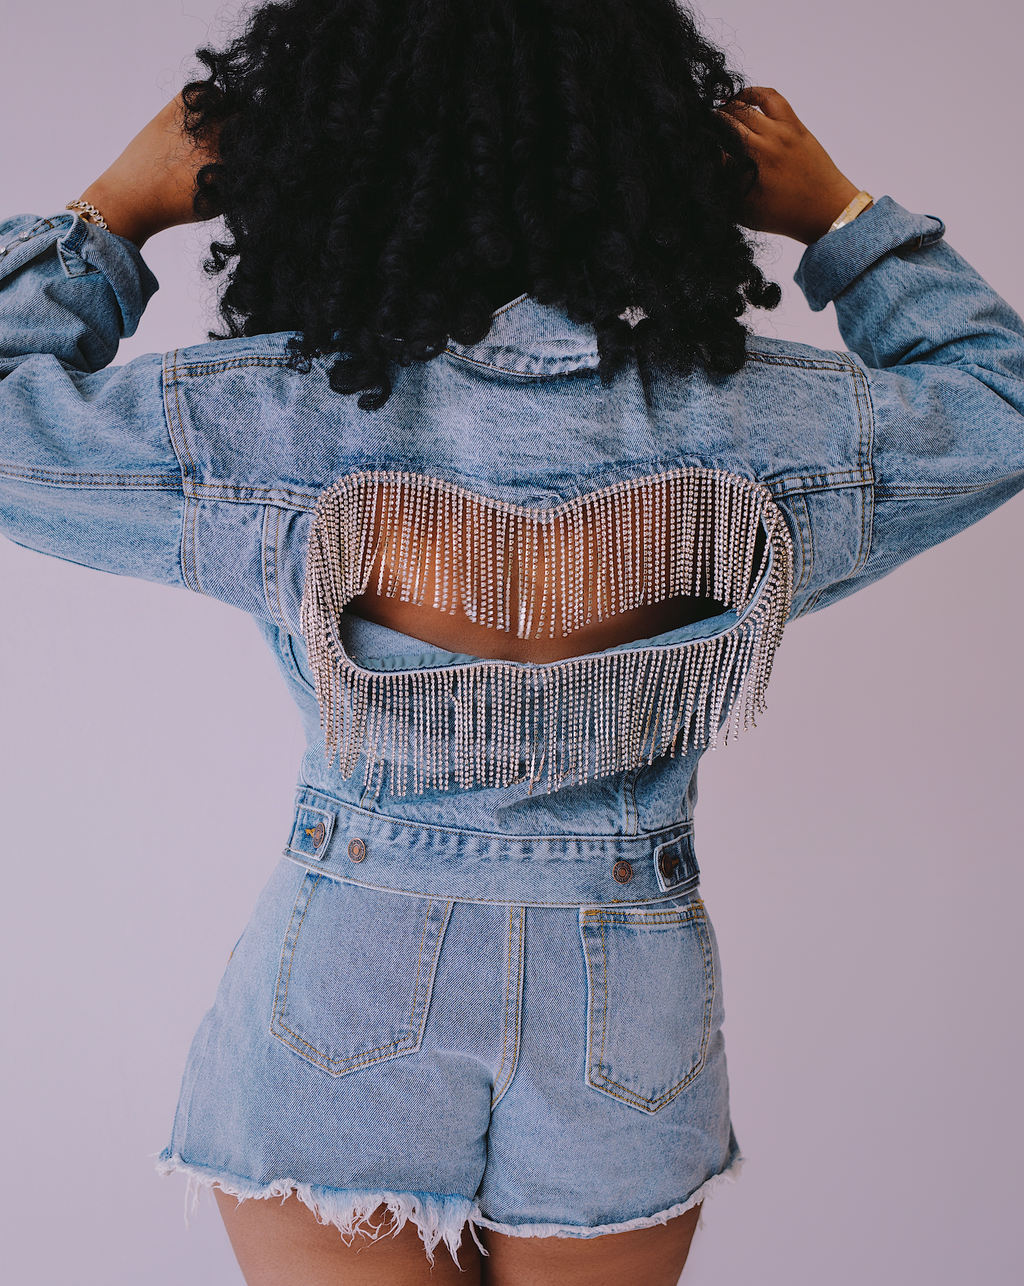 Have Some Heart | Denim Jacket Rhinestone Fringe SHIPS 7/20-7/30